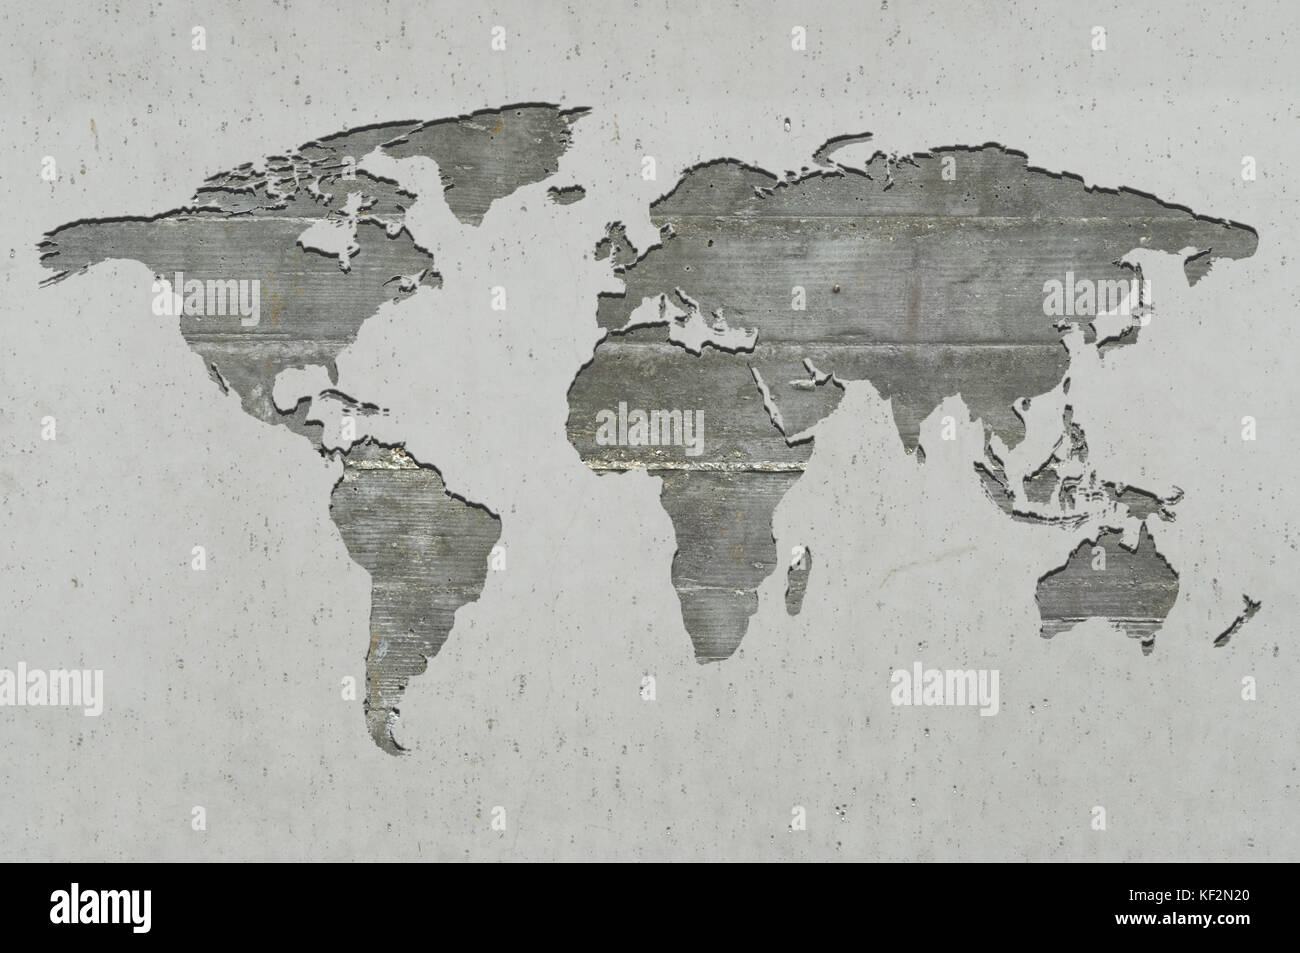 World map on concrete stock photos world map on concrete stock world map on reinforced concrete stock image gumiabroncs Images